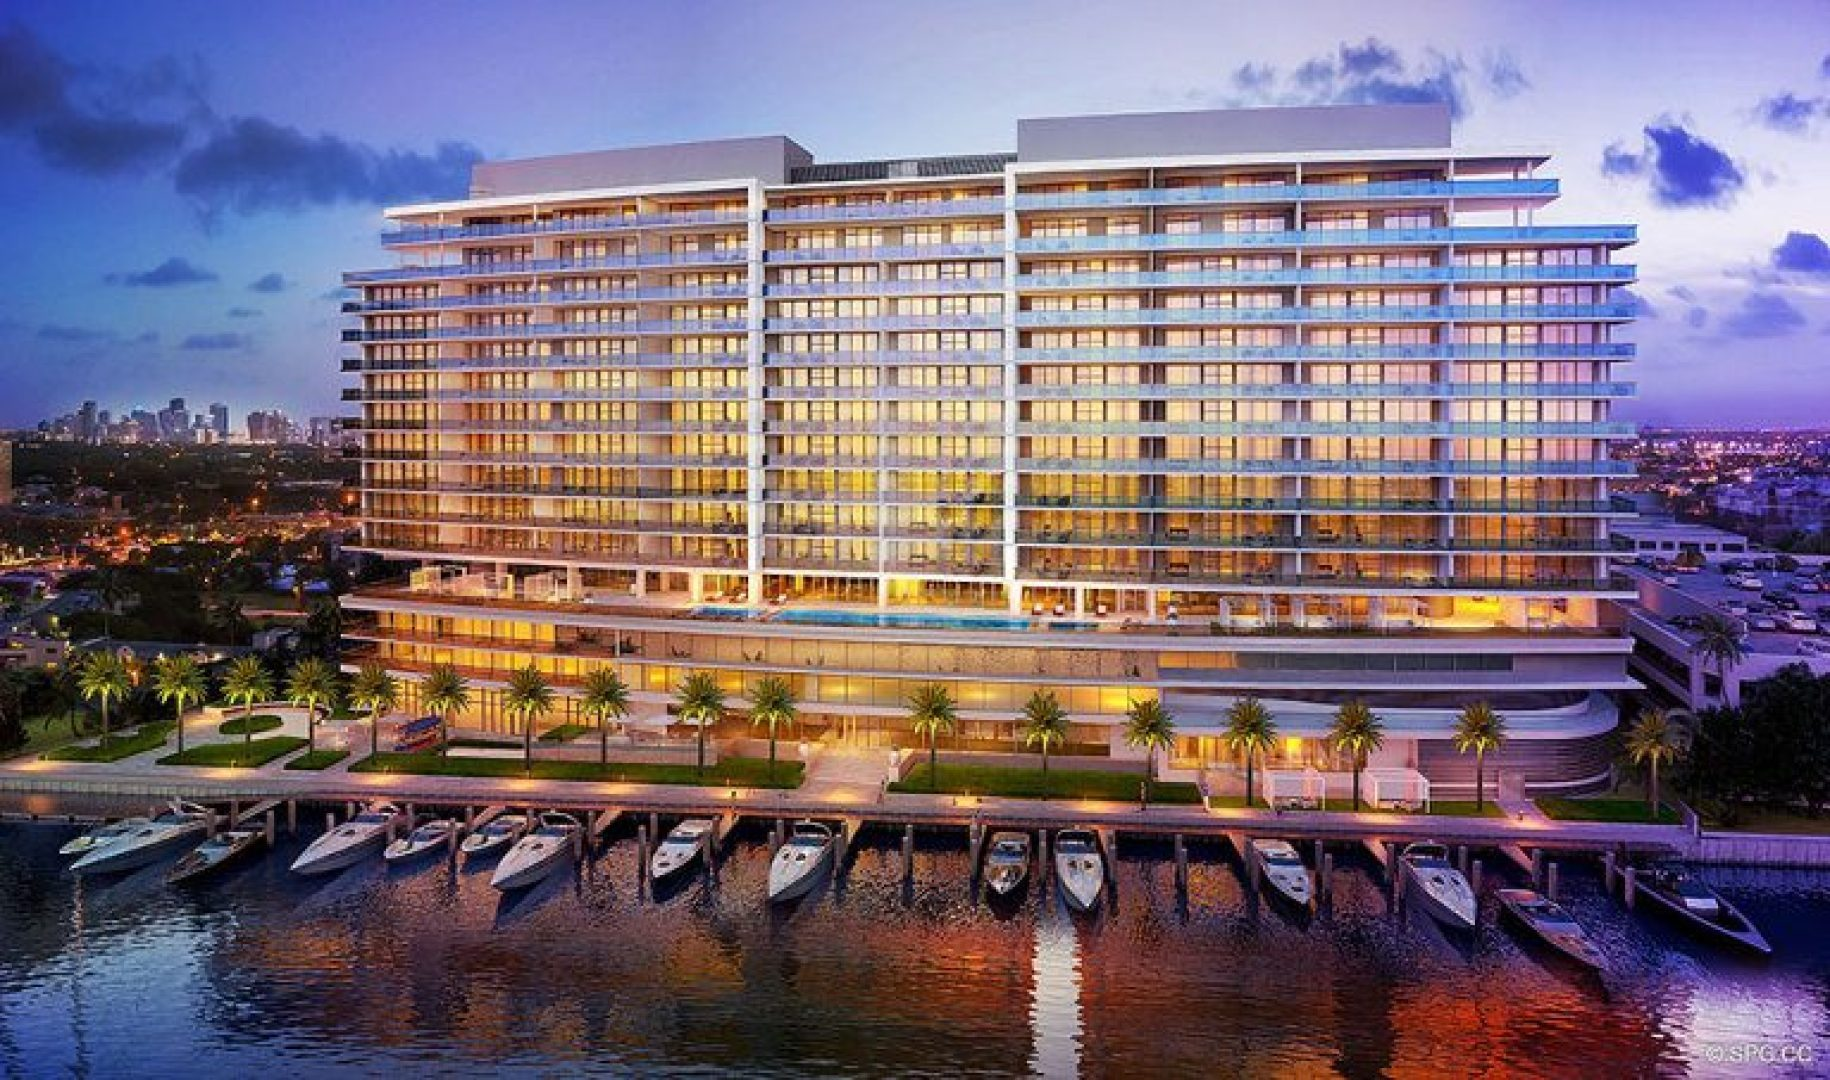 Architectural Concept for Riva, Luxury Waterfront Condos in Fort Lauderdale, Florida 33304.